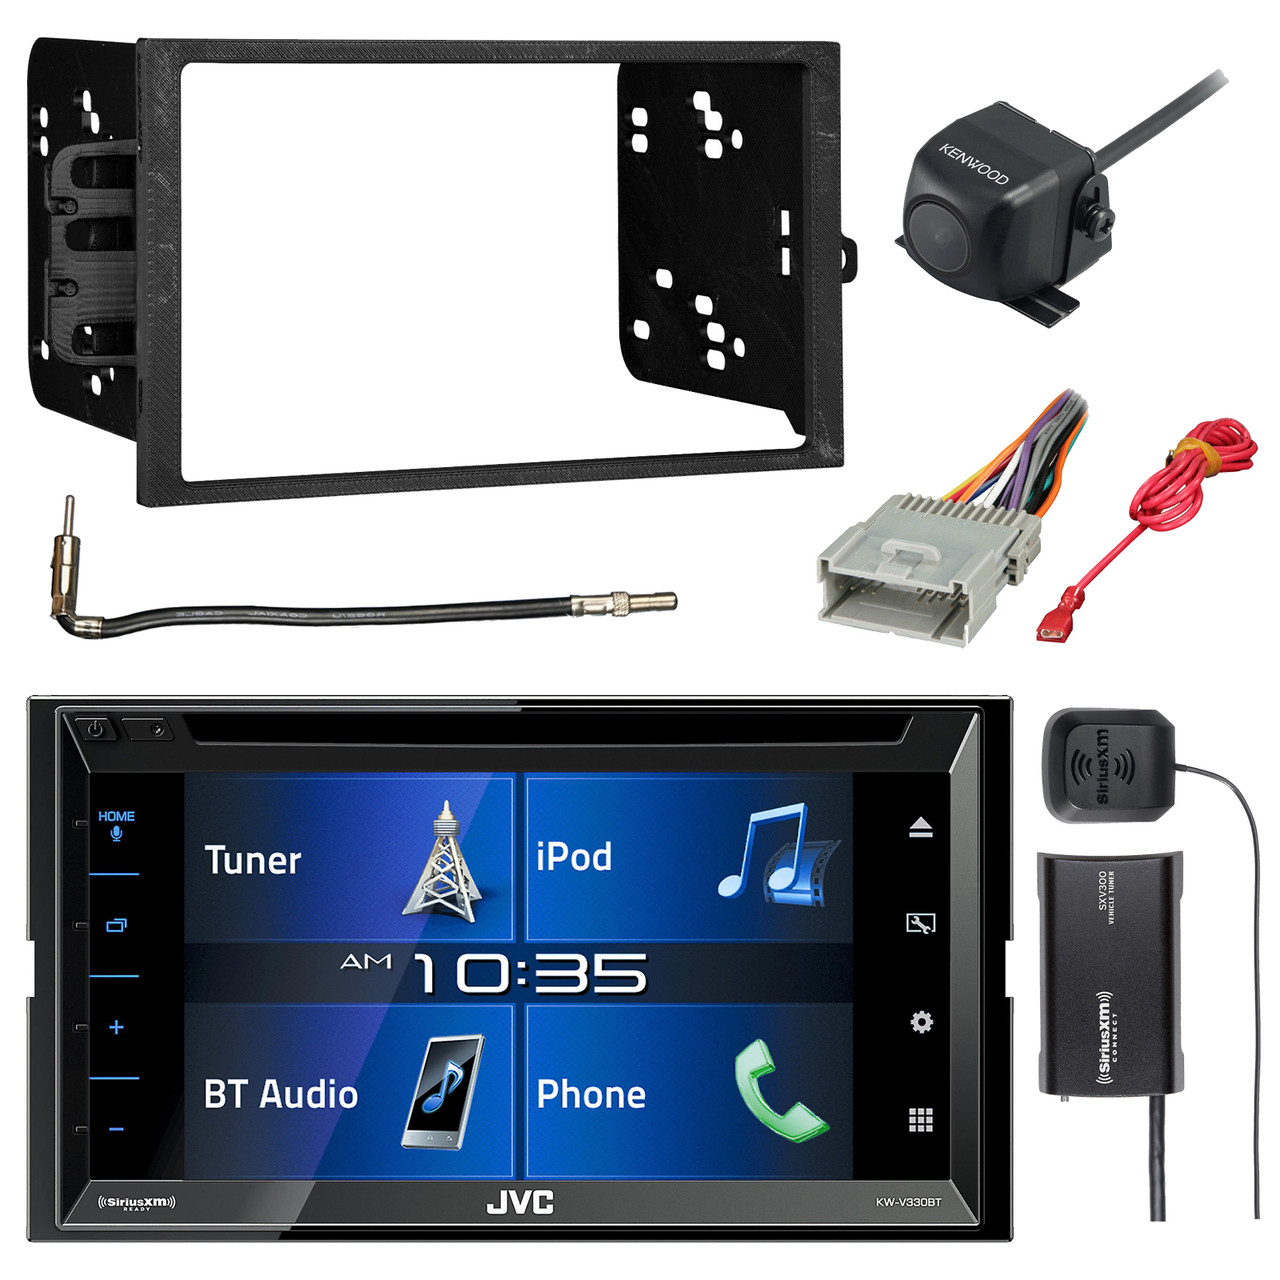 hight resolution of jvc kw v330bt 6 8 double din bluetooth dvd cd am fm stereo siriusxm satellite vehicle tuner kit kenwood backup camera metra double din install dash kit